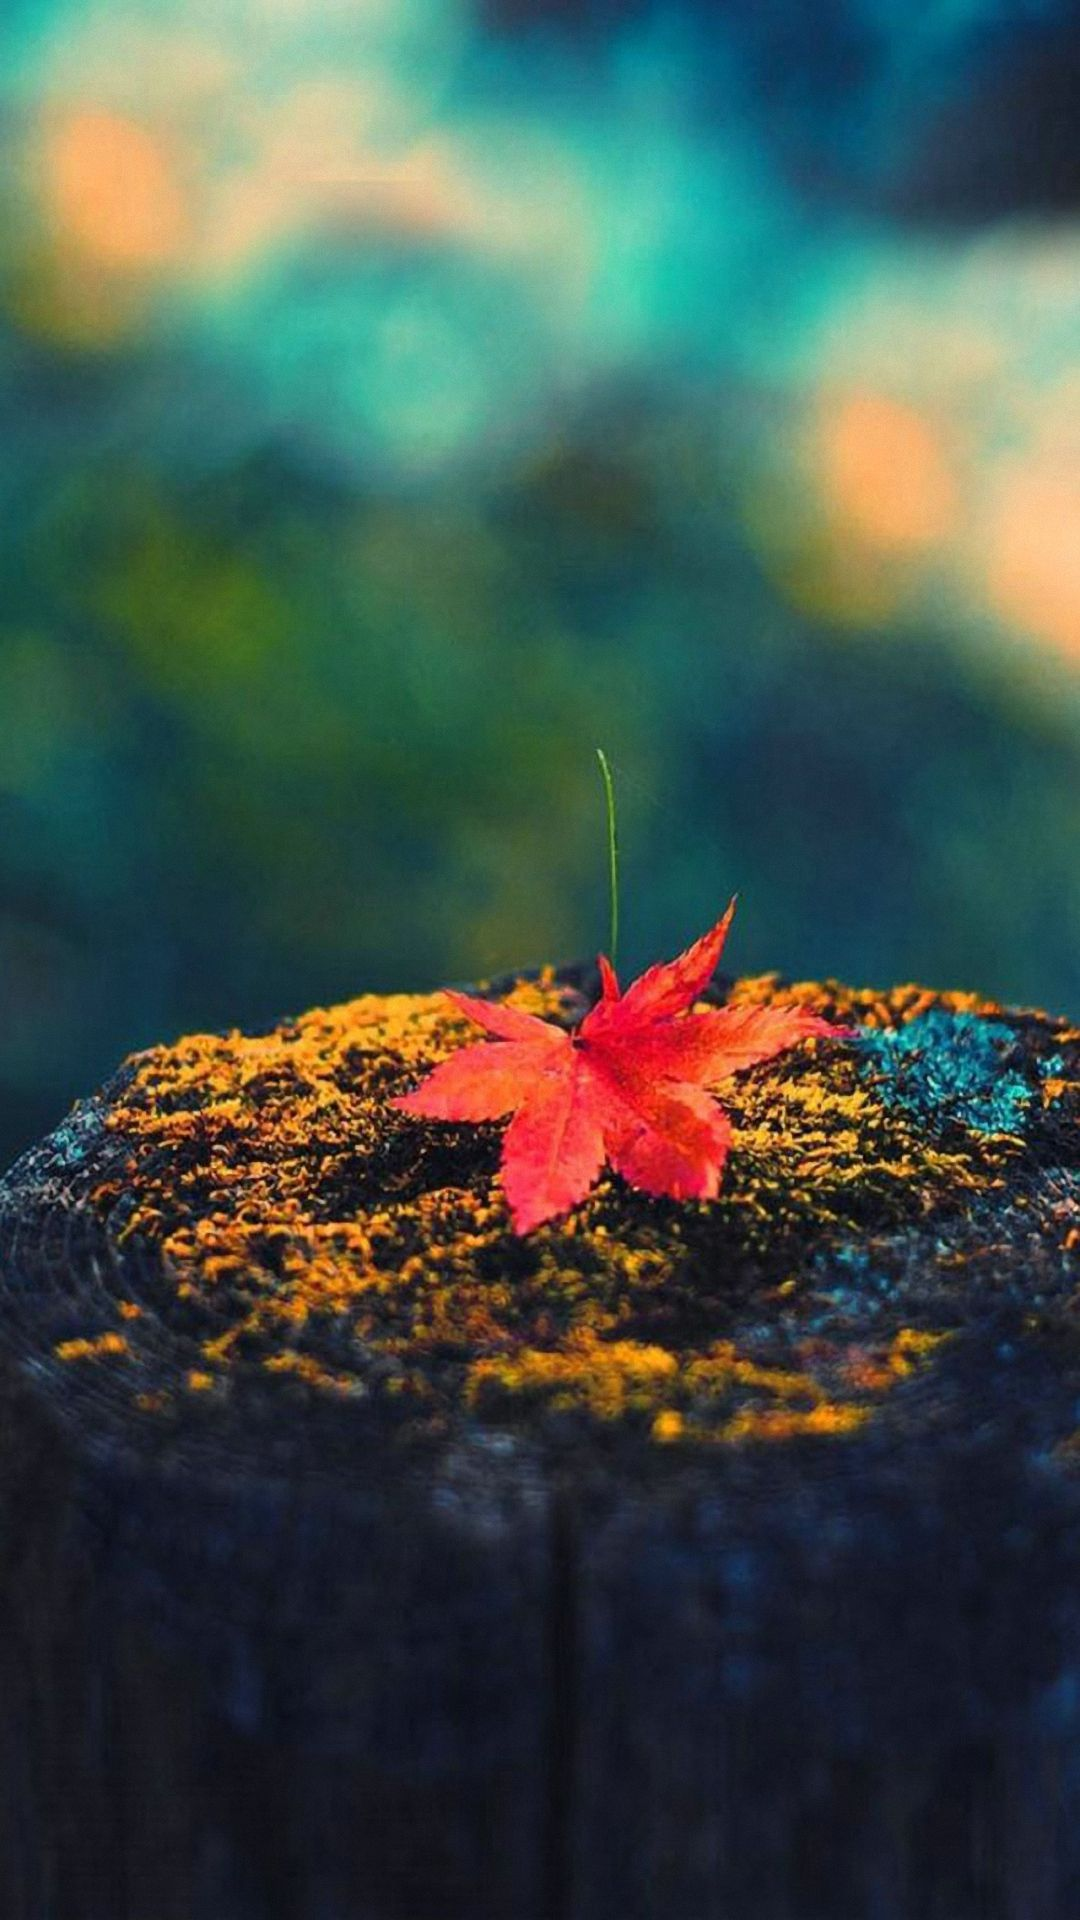 Best Cell Phone Hd Background Pixelstalk Net In 2020 Autumn Leaves Wallpaper Best Nature Wallpapers Iphone Wallpaper Fall